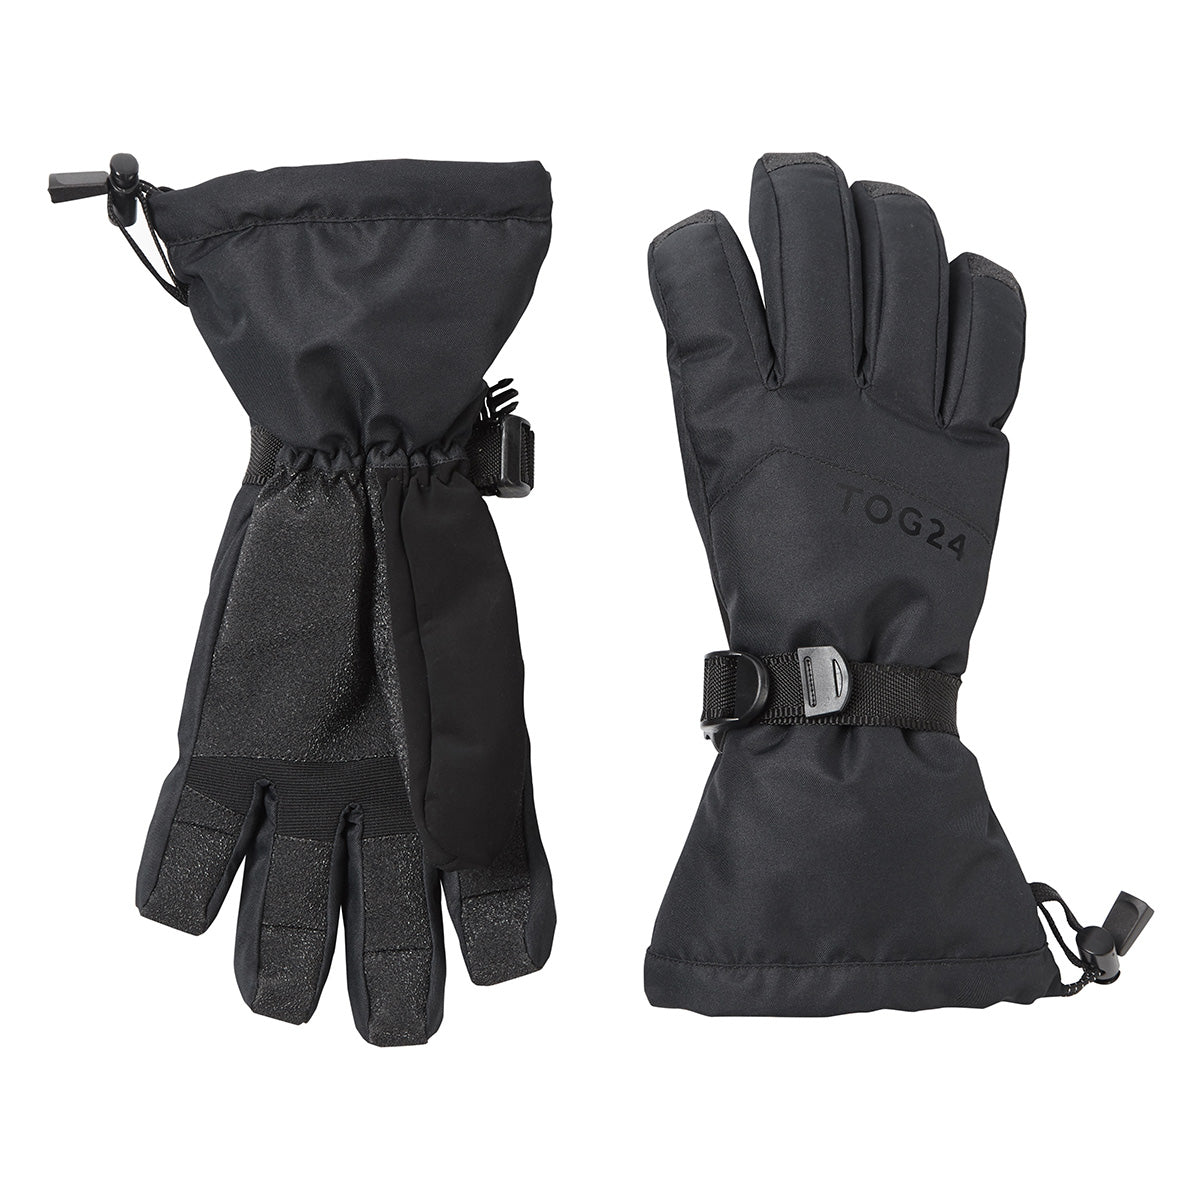 Lockton Waterproof Ski Gloves - Black